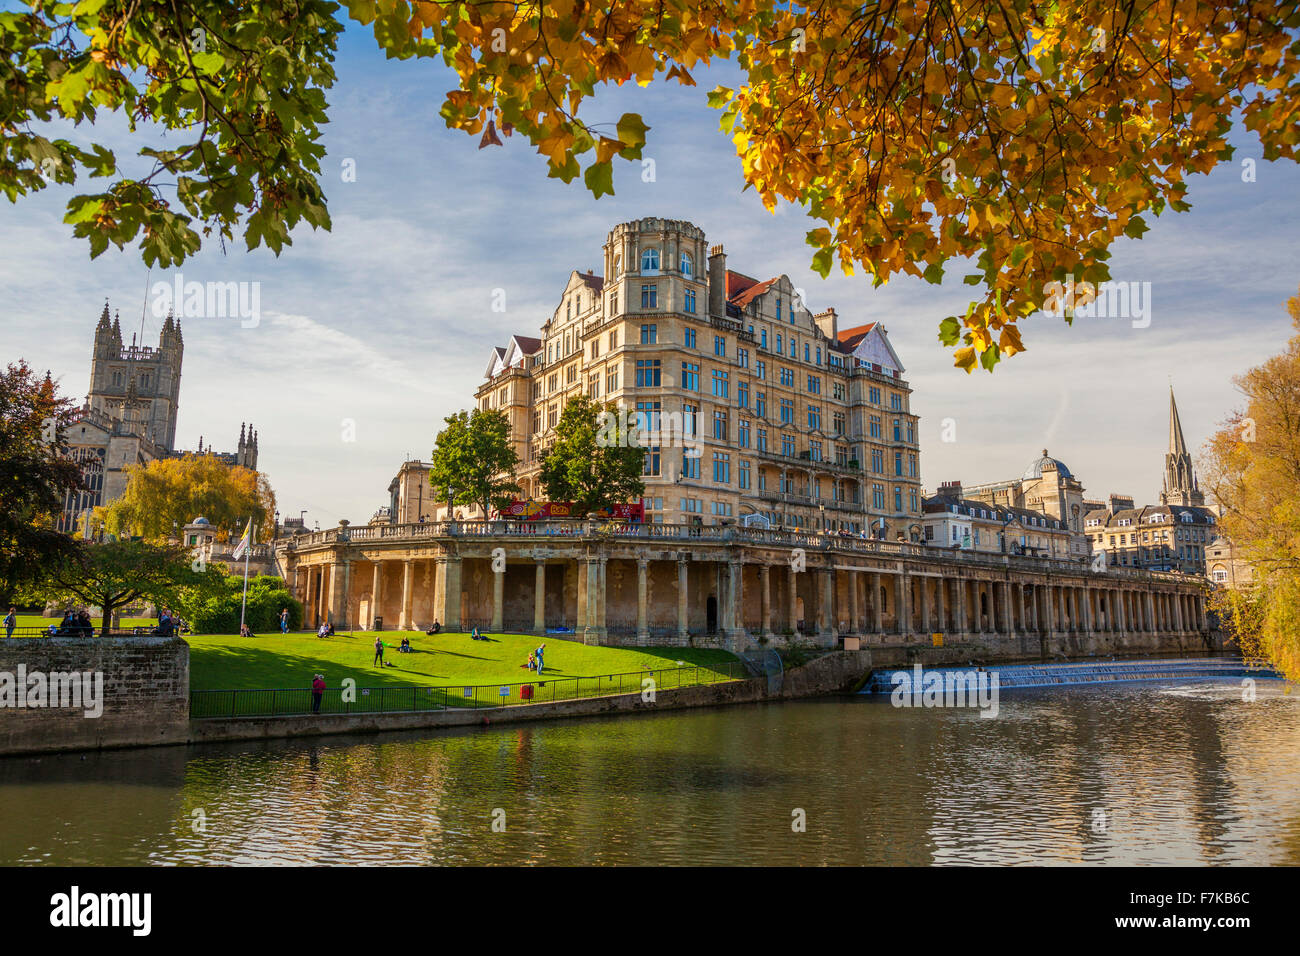 Bath, Somerset, England, U.K. - Stock Image